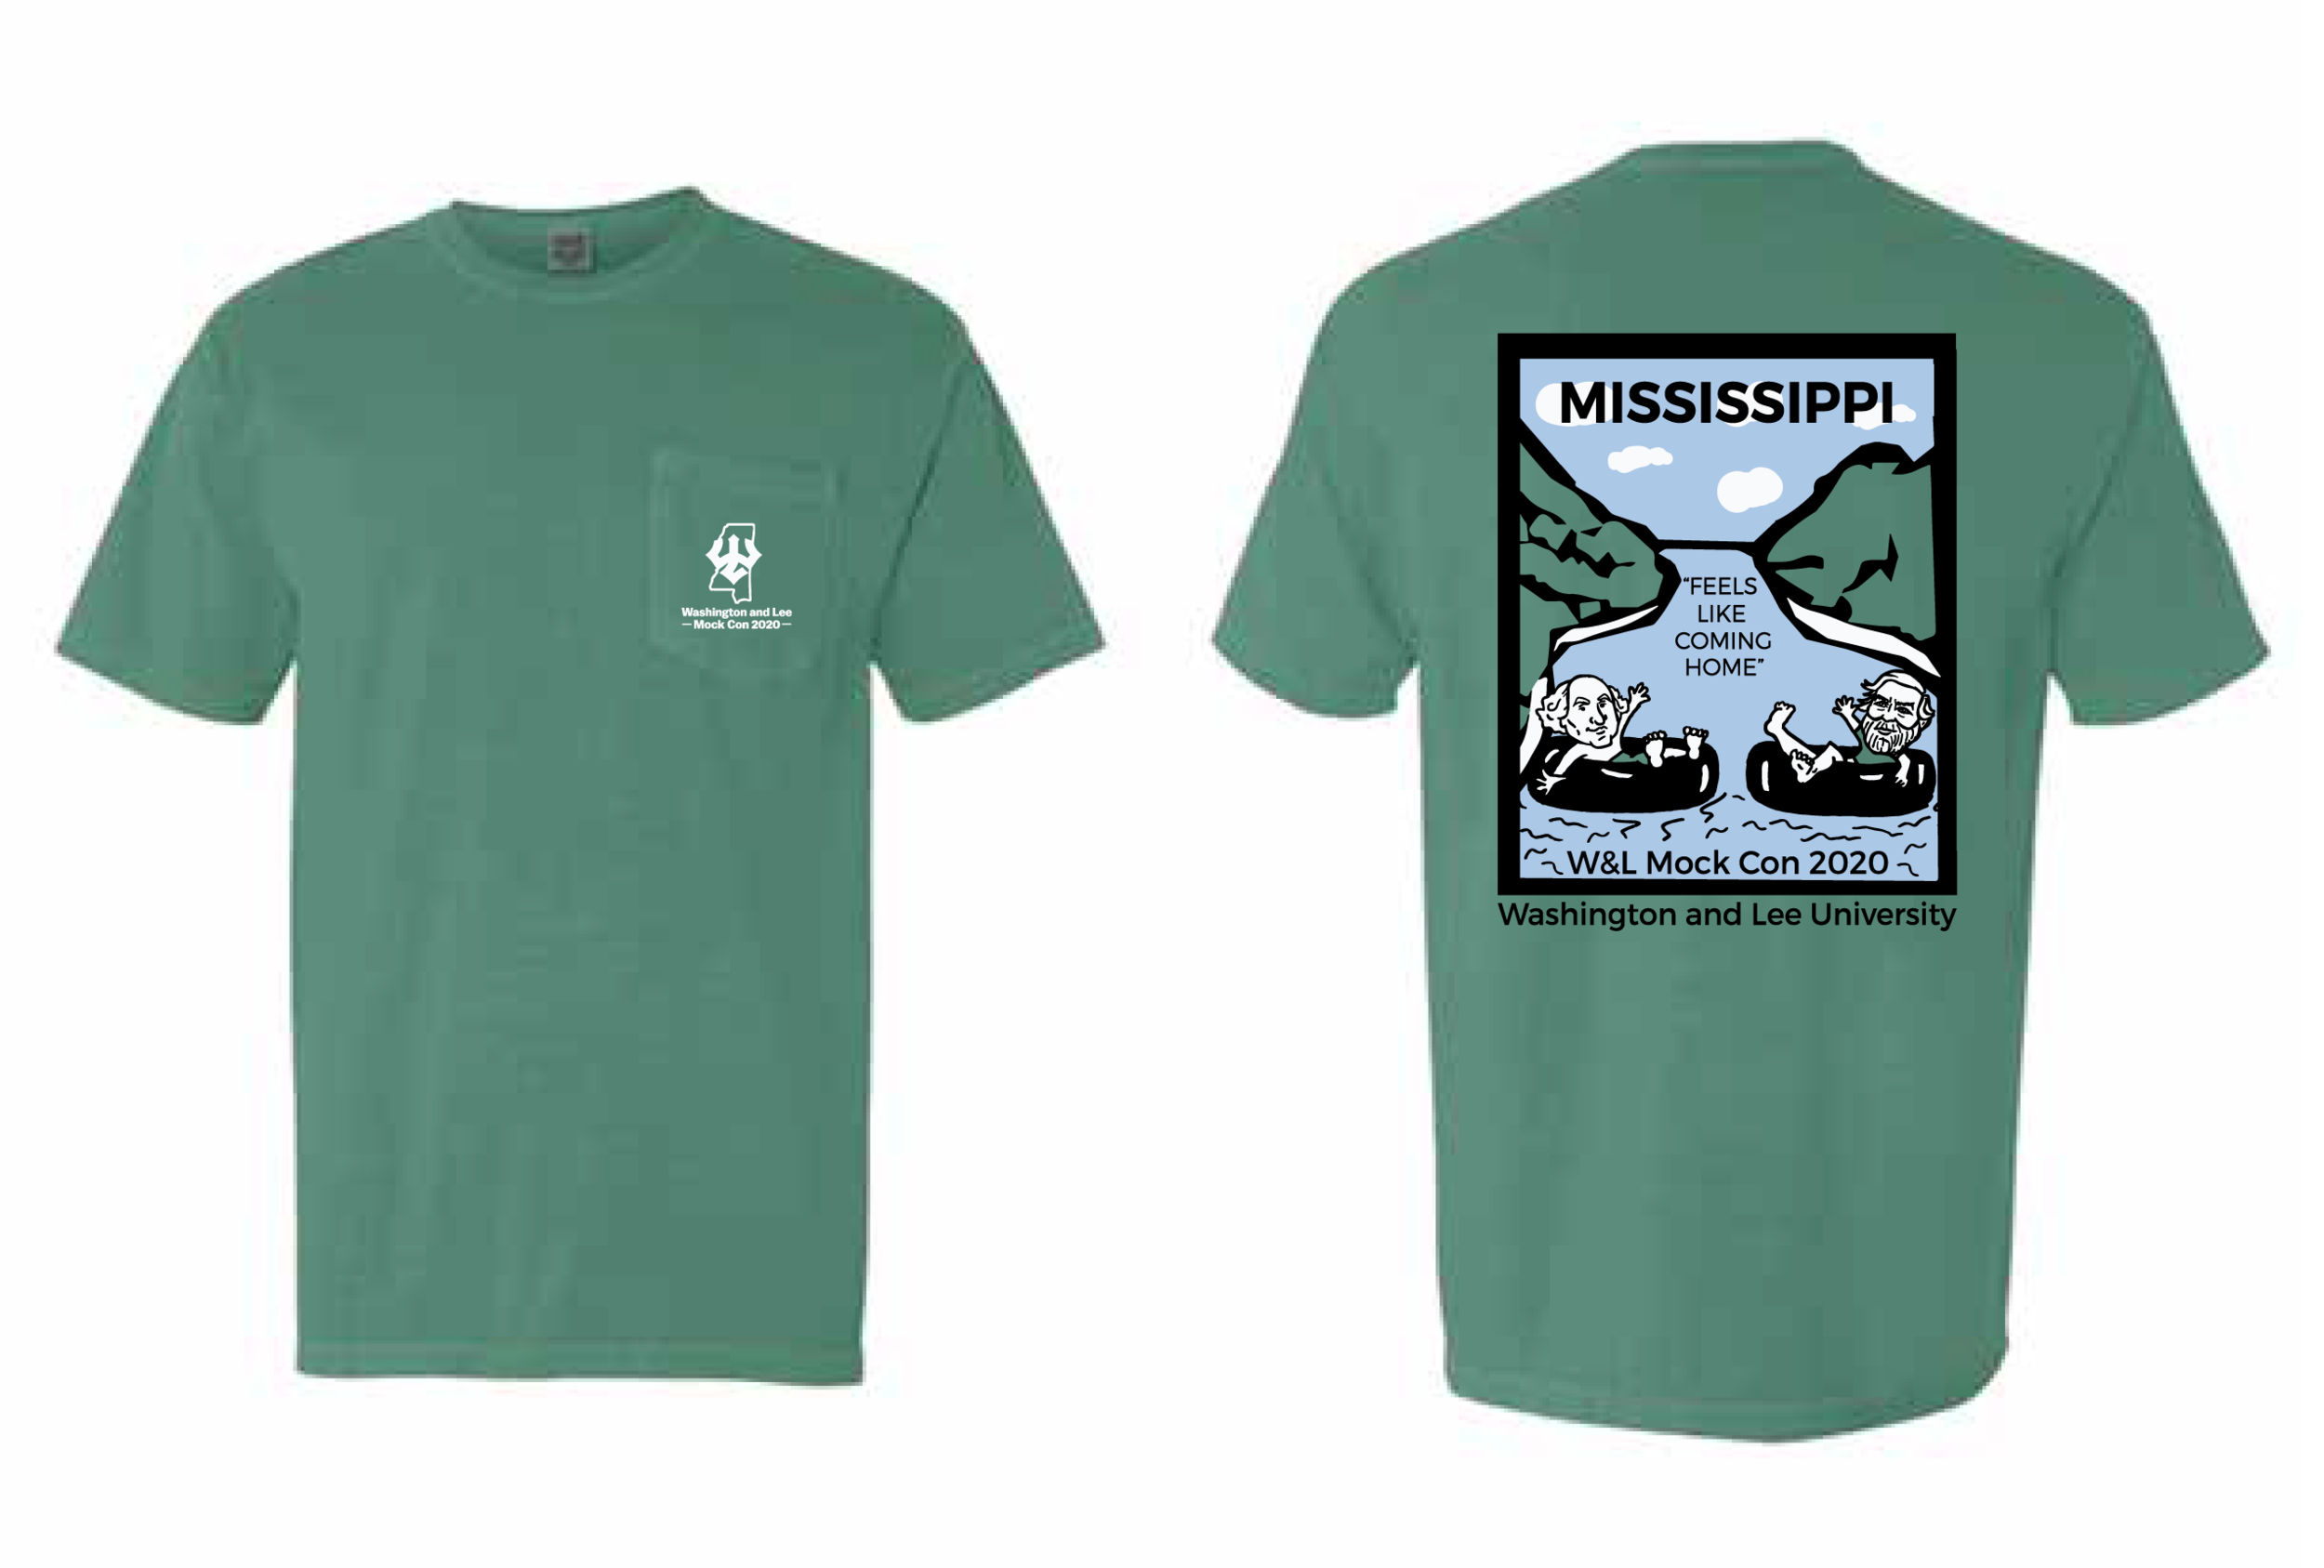 Mississippi State Tee